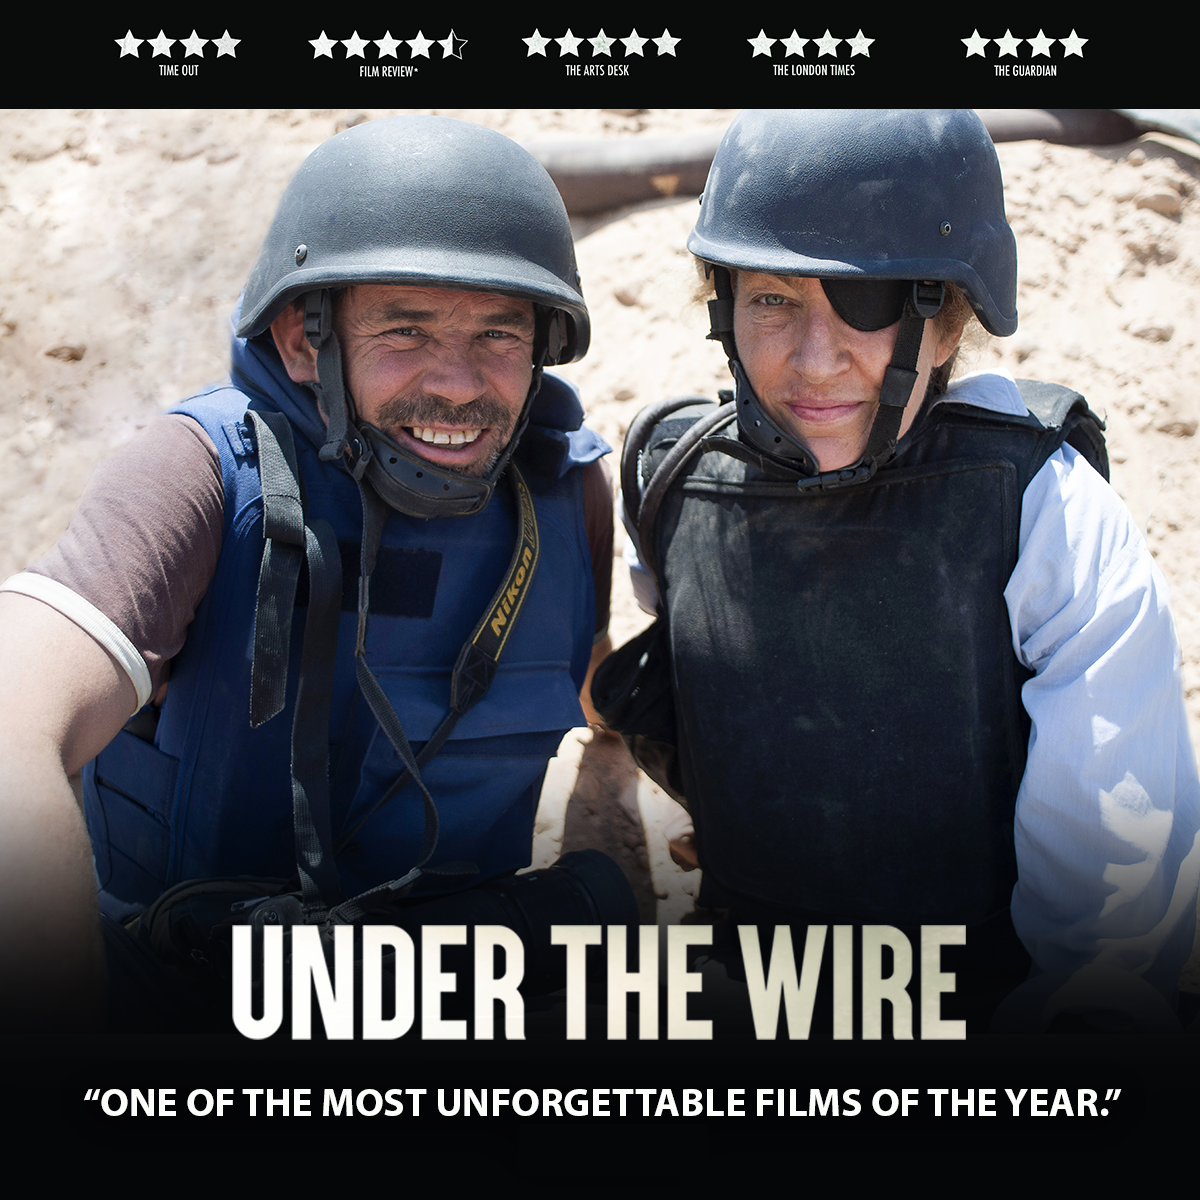 Under_The_Wire_1200x1200_3.png